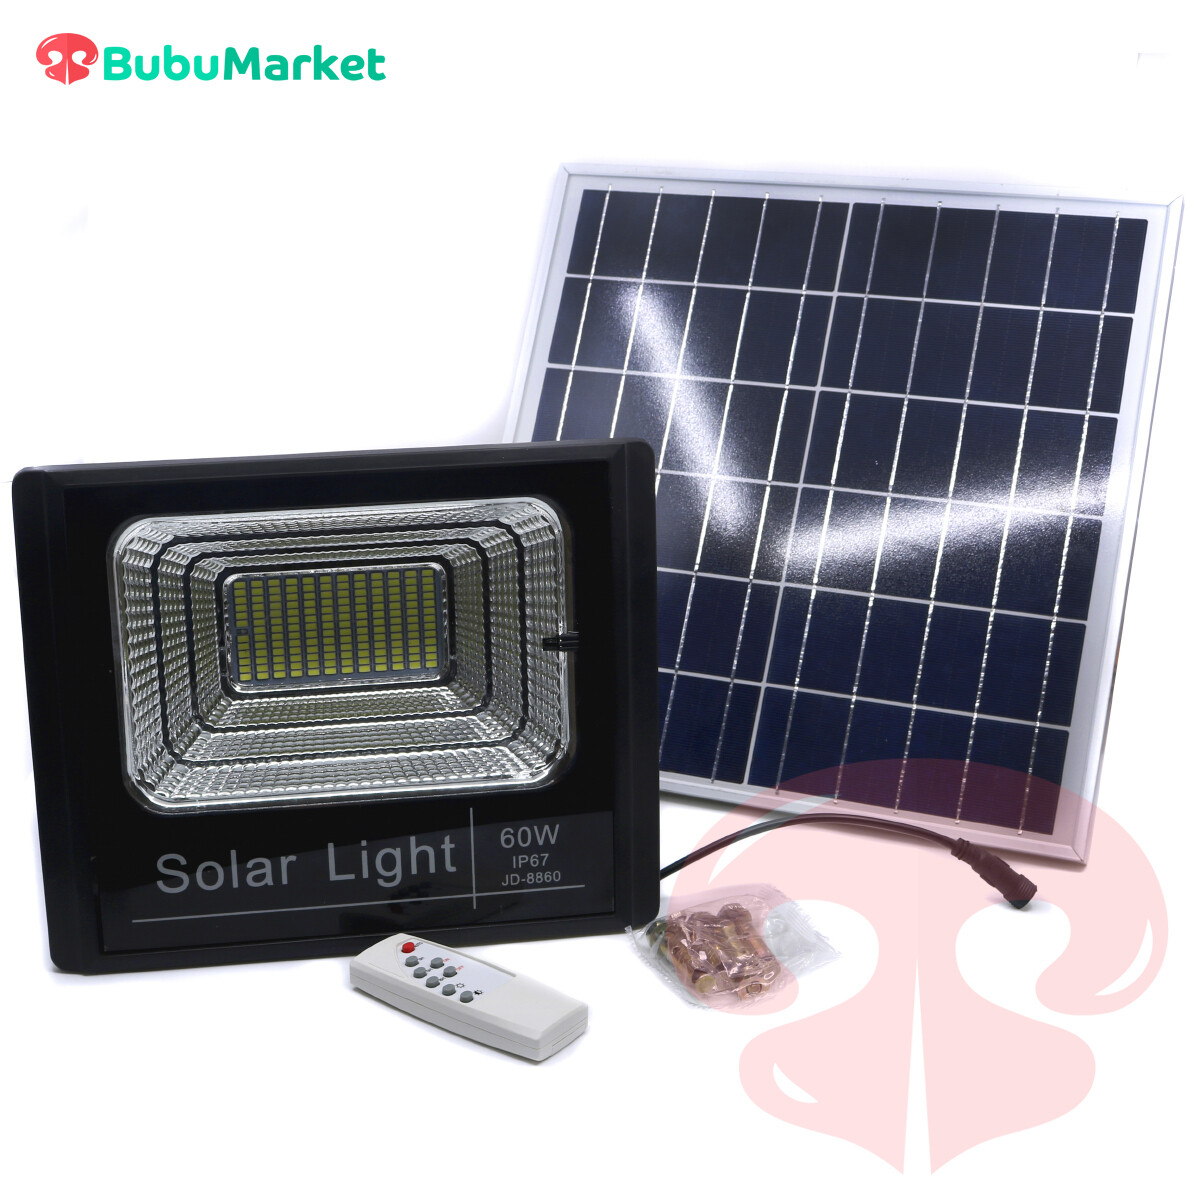 REFLECTOR LED DE 60 WATTS CON BATERIA RECARGABLE CON PANEL SOLAR CON MANDO A DISTANCIA.